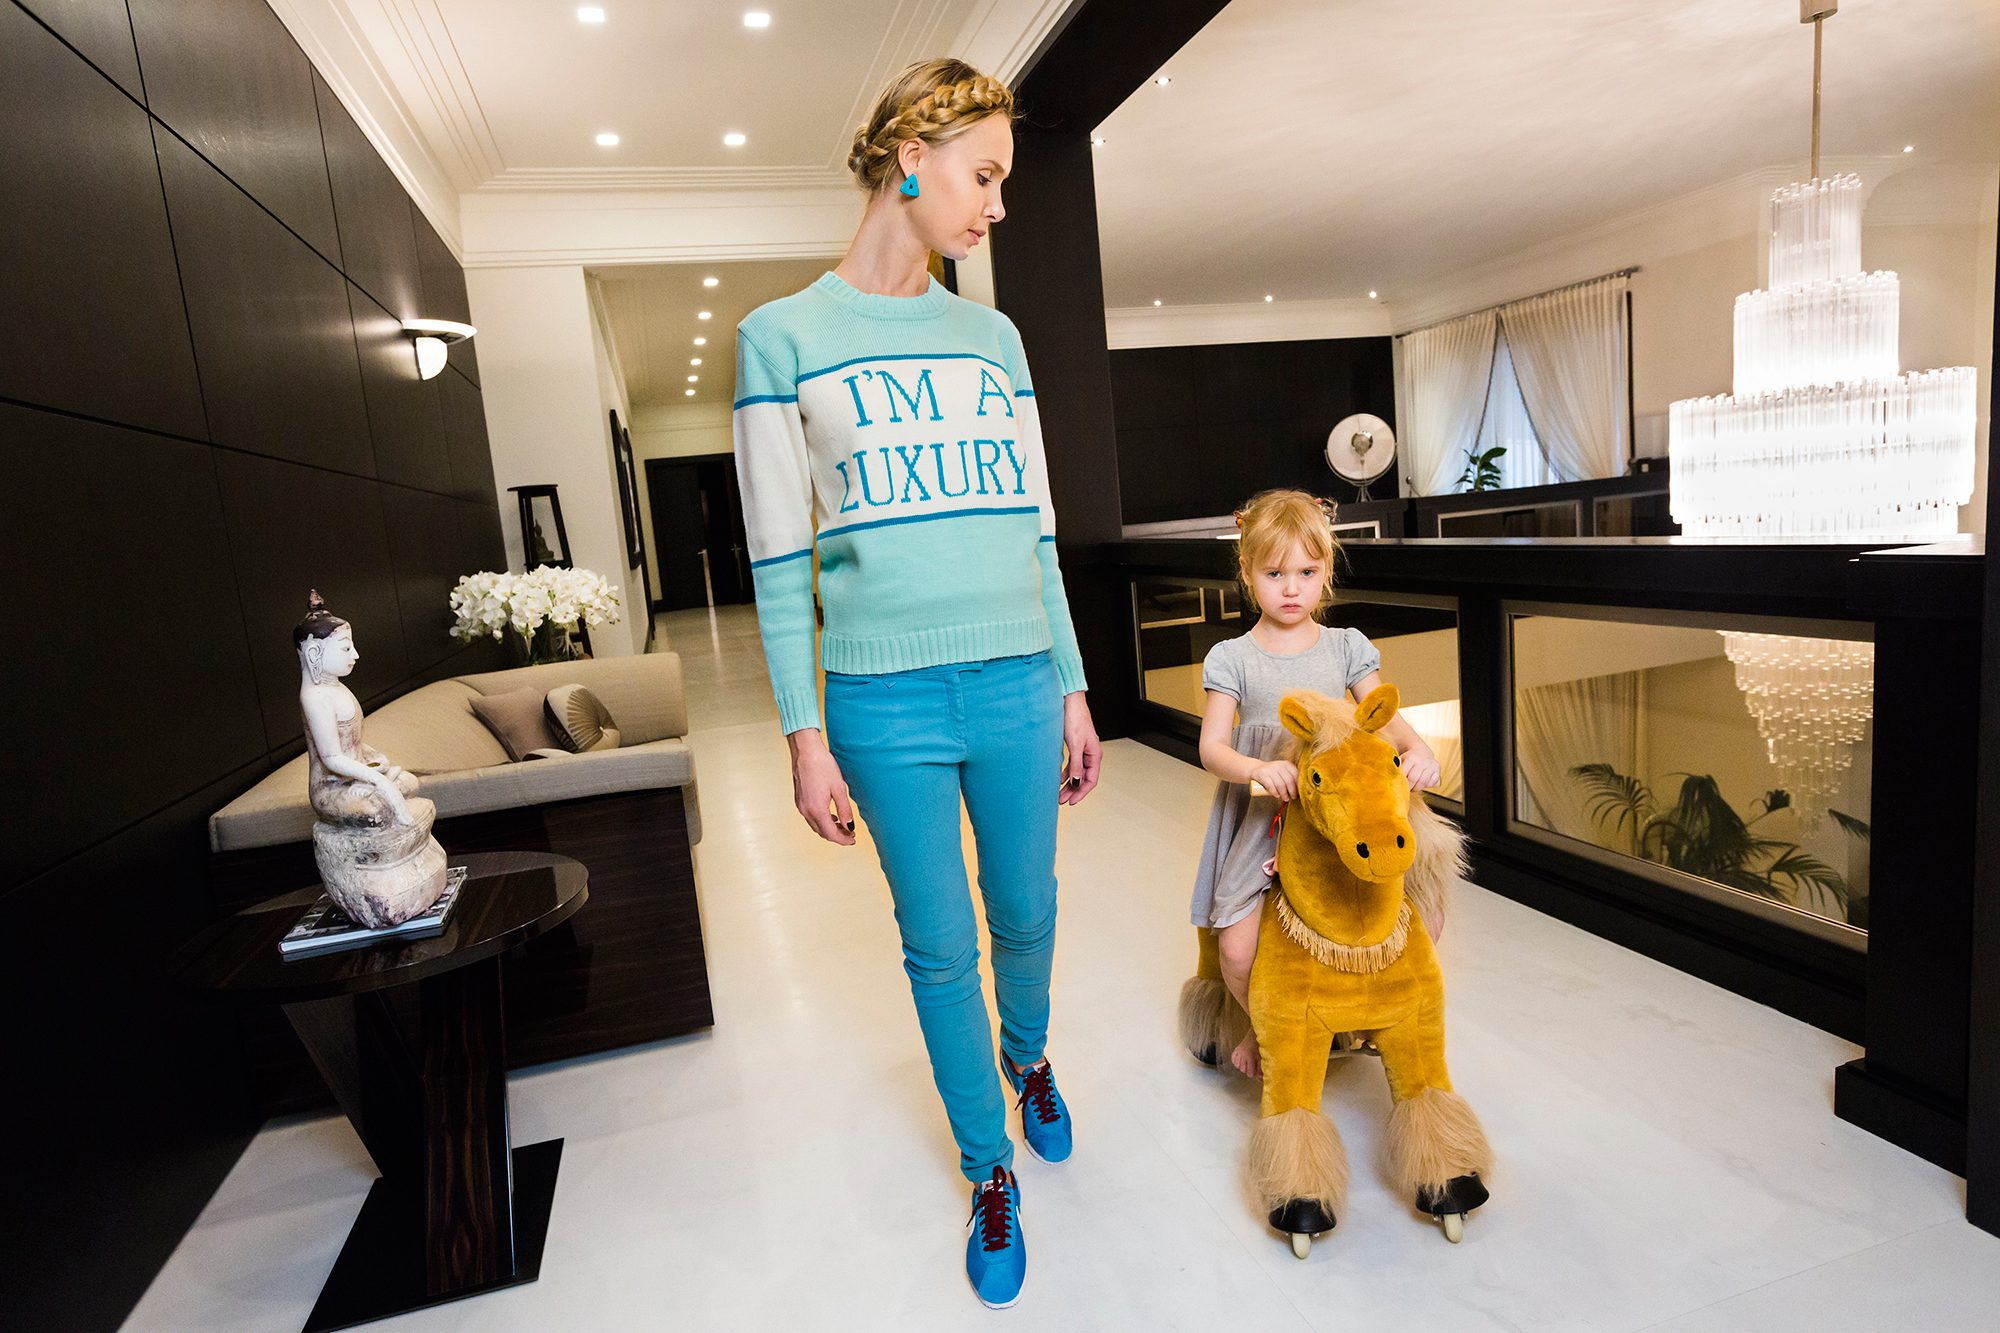 """I am a luxury"" sweater from GENERATION WEALTH by Lauren Greenfield"